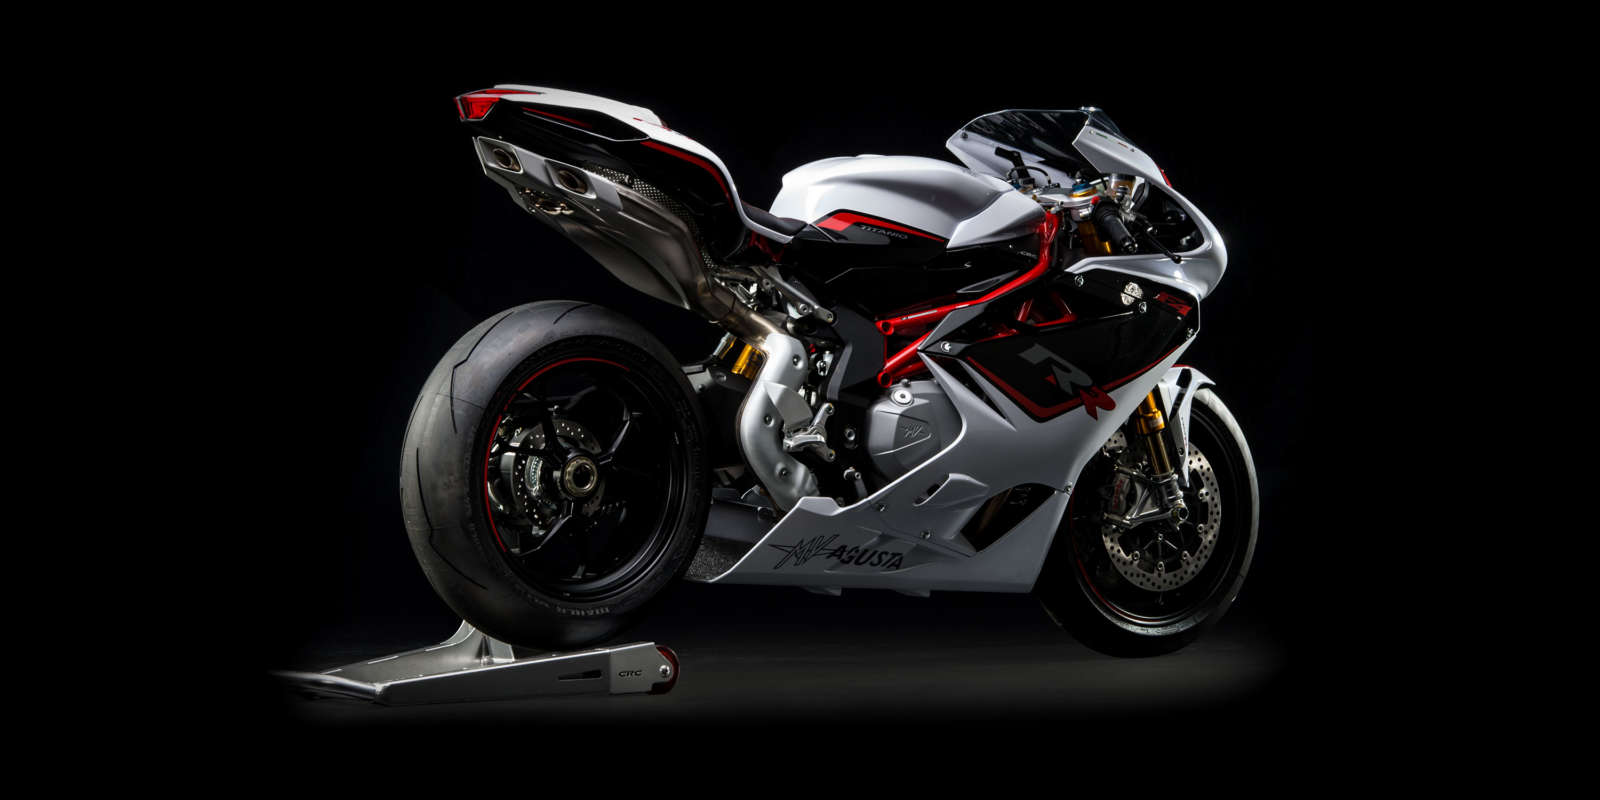 mv agusta f3 f4 and brutale 1090 officially launched in india prices start at lakh. Black Bedroom Furniture Sets. Home Design Ideas